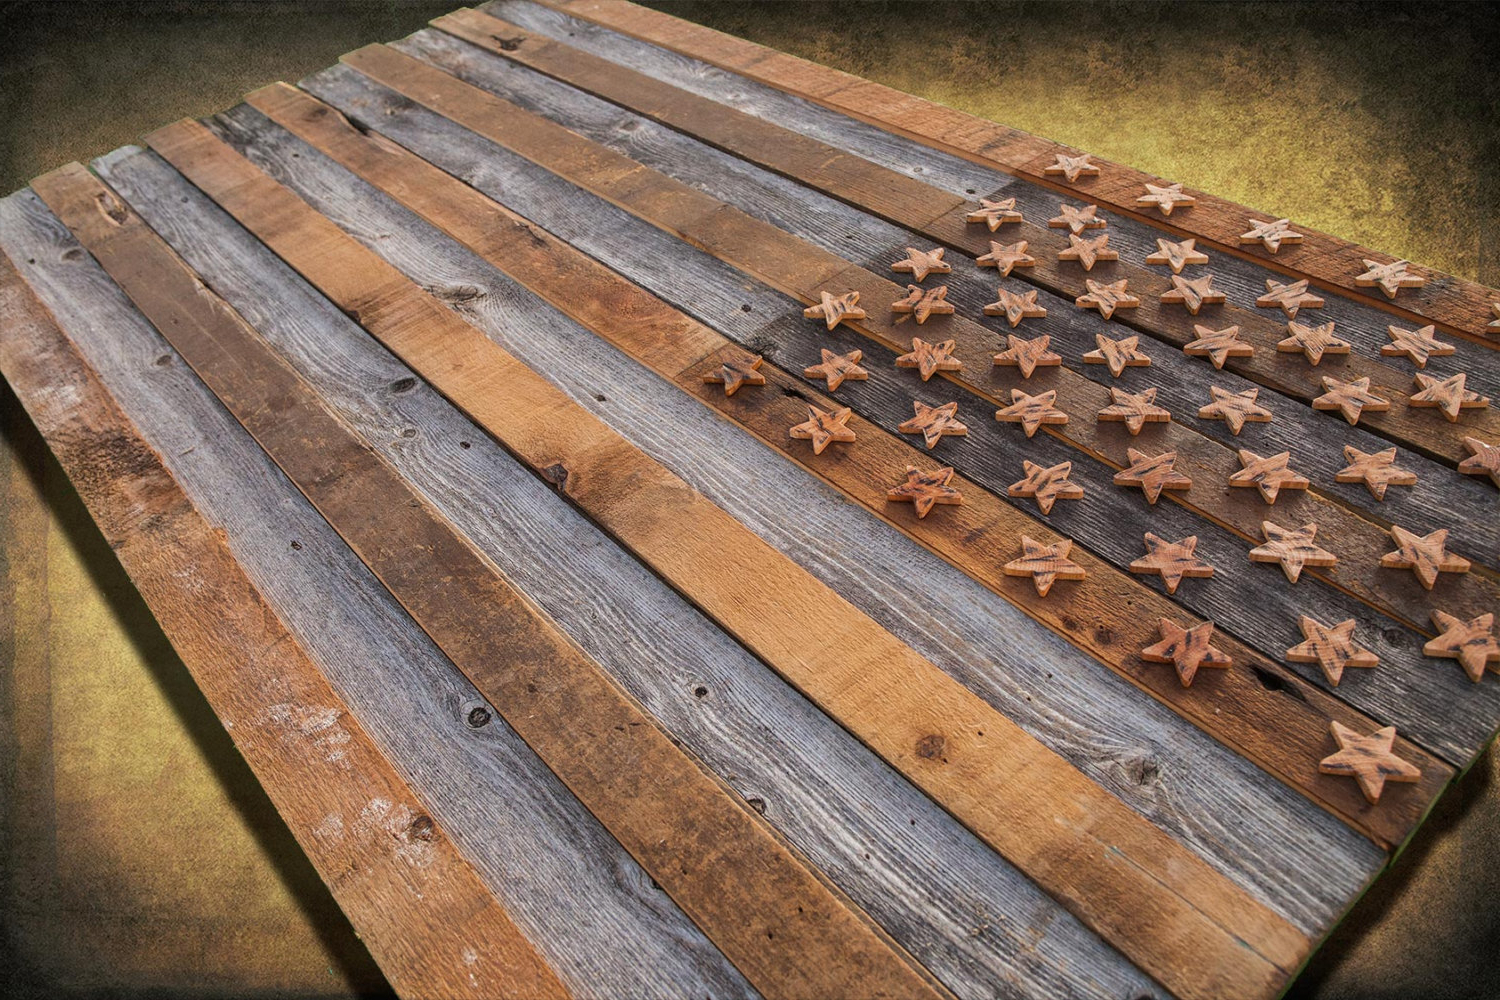 2020 American Flag 3D Wall Decor Within Barnwood American Flag, 100 Year Old Wood, One Of A Kind, 3D, Wooden (View 3 of 20)